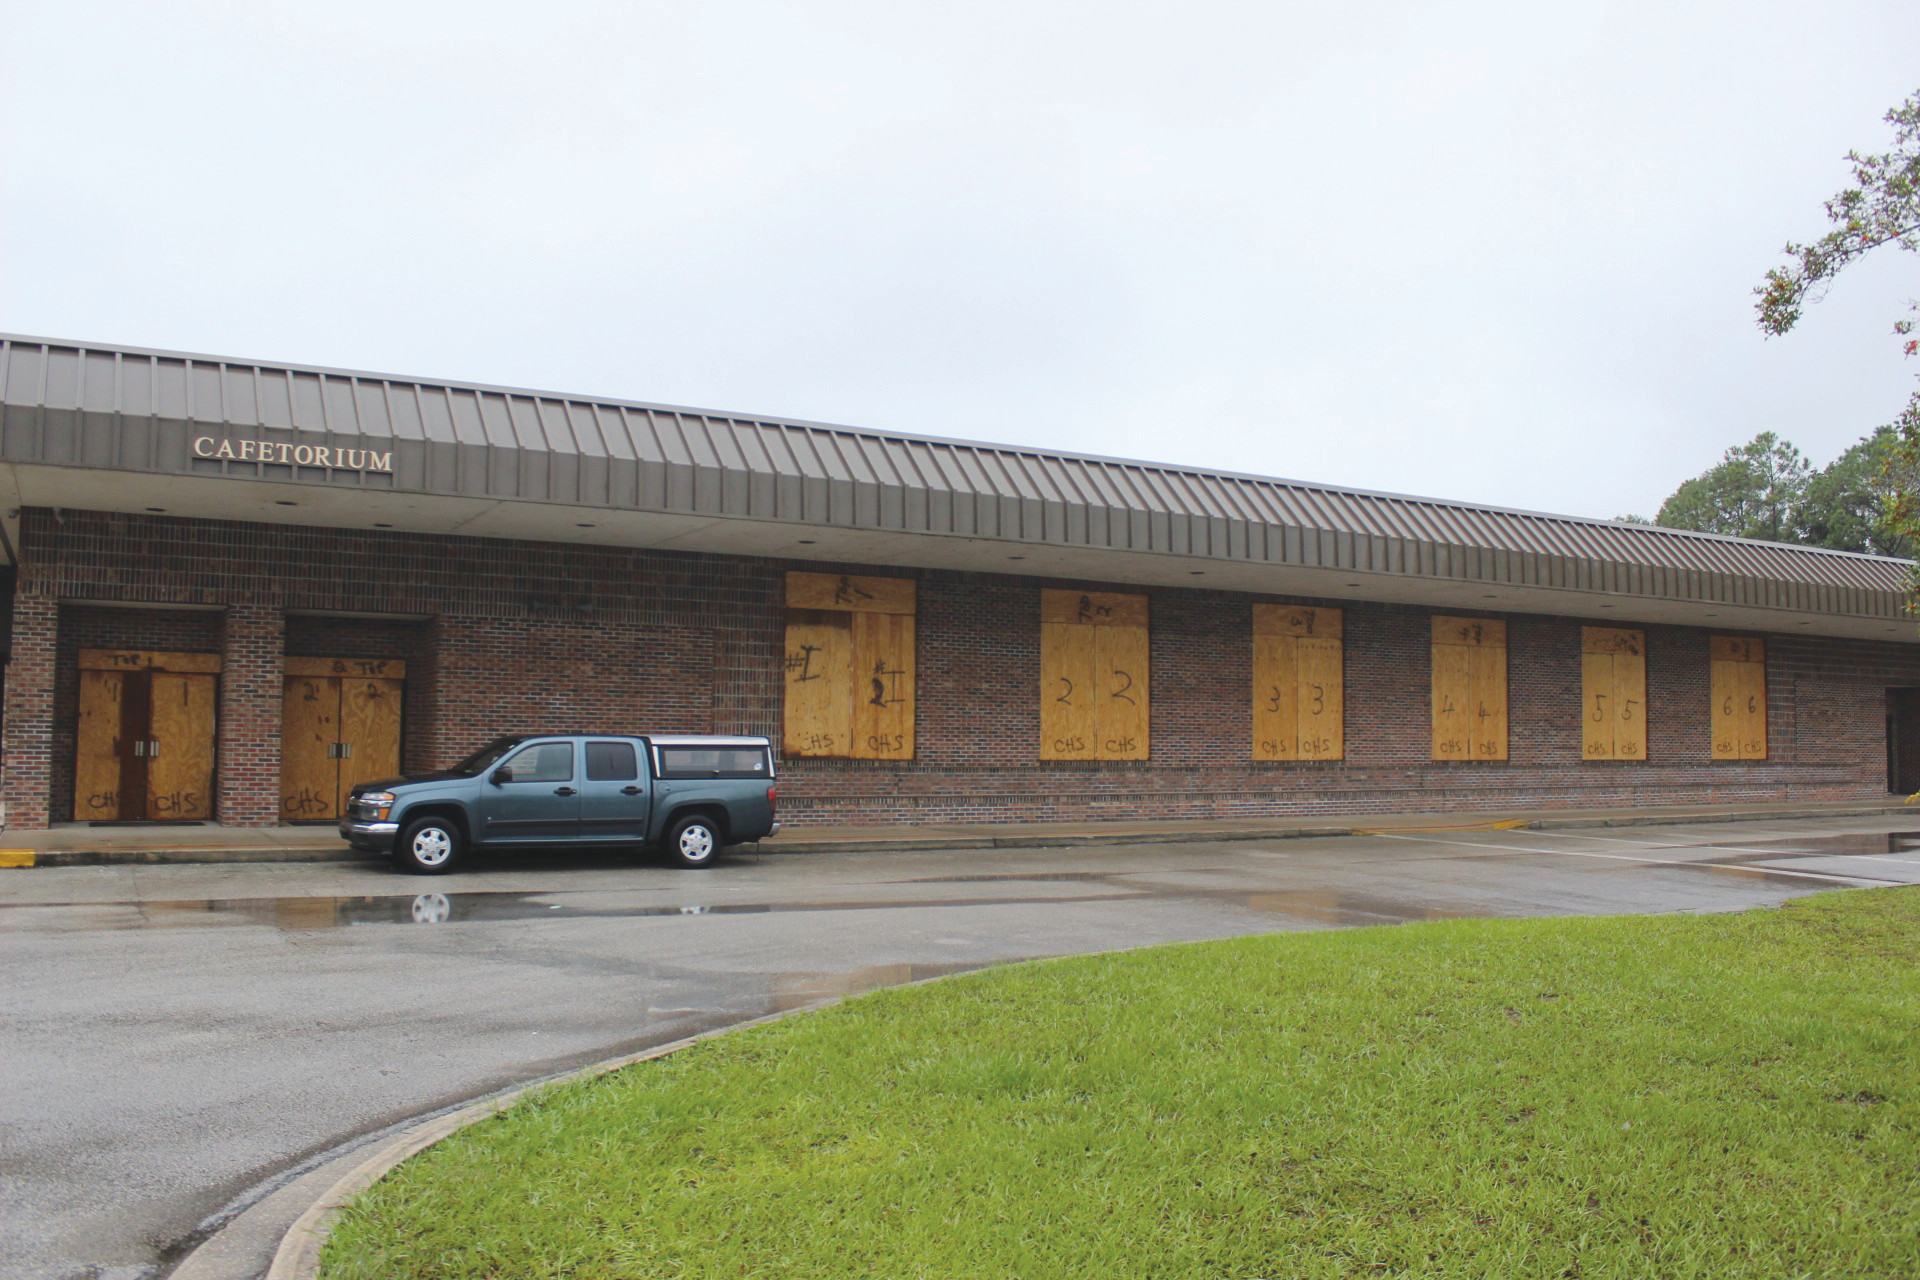 Originally boarded up, the Clay High cafetorium was later opened as an evacuation shelter at 5 p.m. on Oct. 6 as officials monitored the storm closer